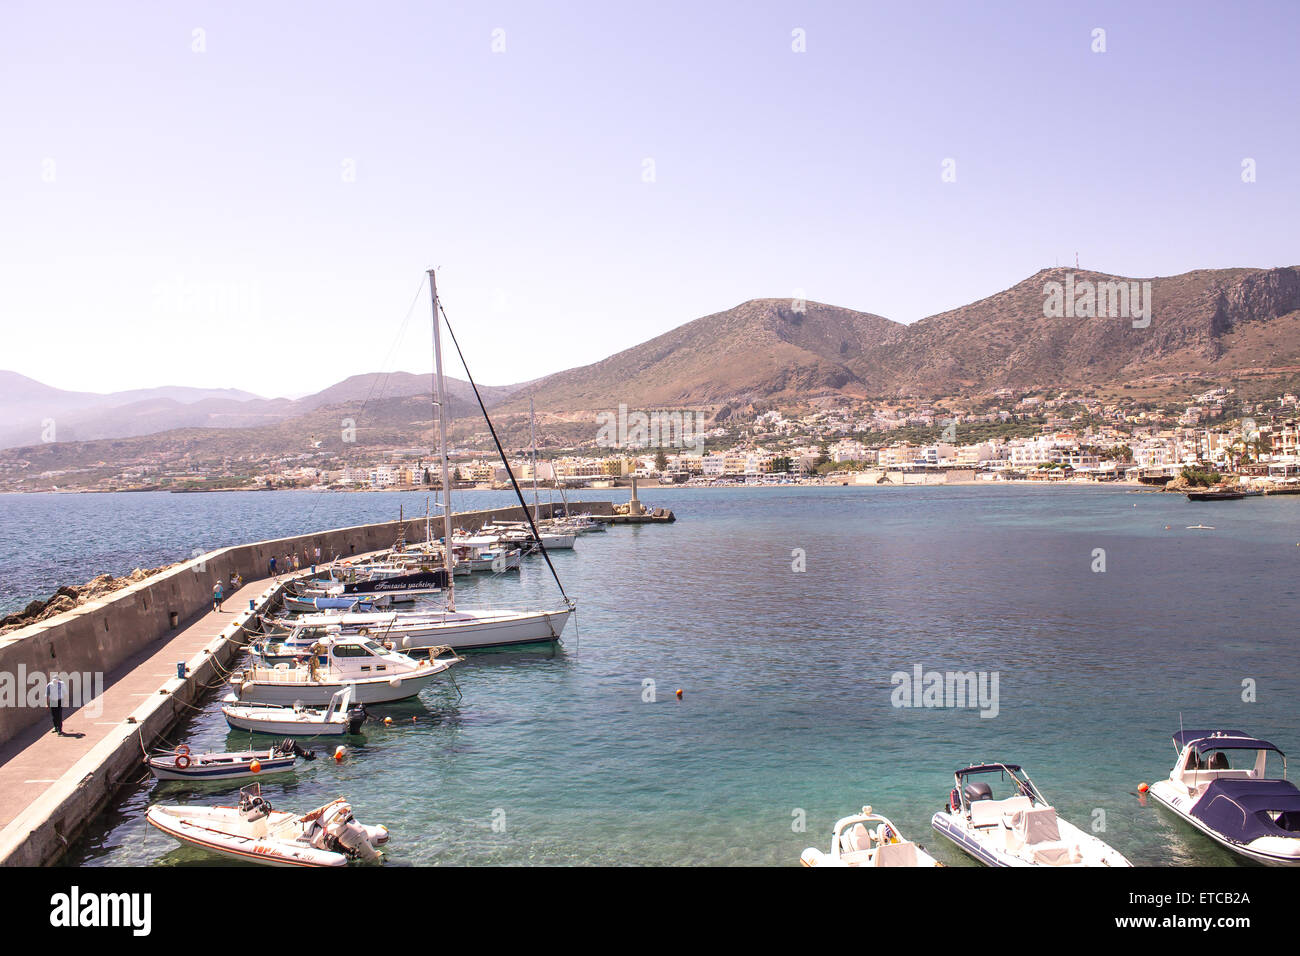 Boats lined up around the harbour in a popular tourist resort of Hersonissos in Crete. - Stock Image